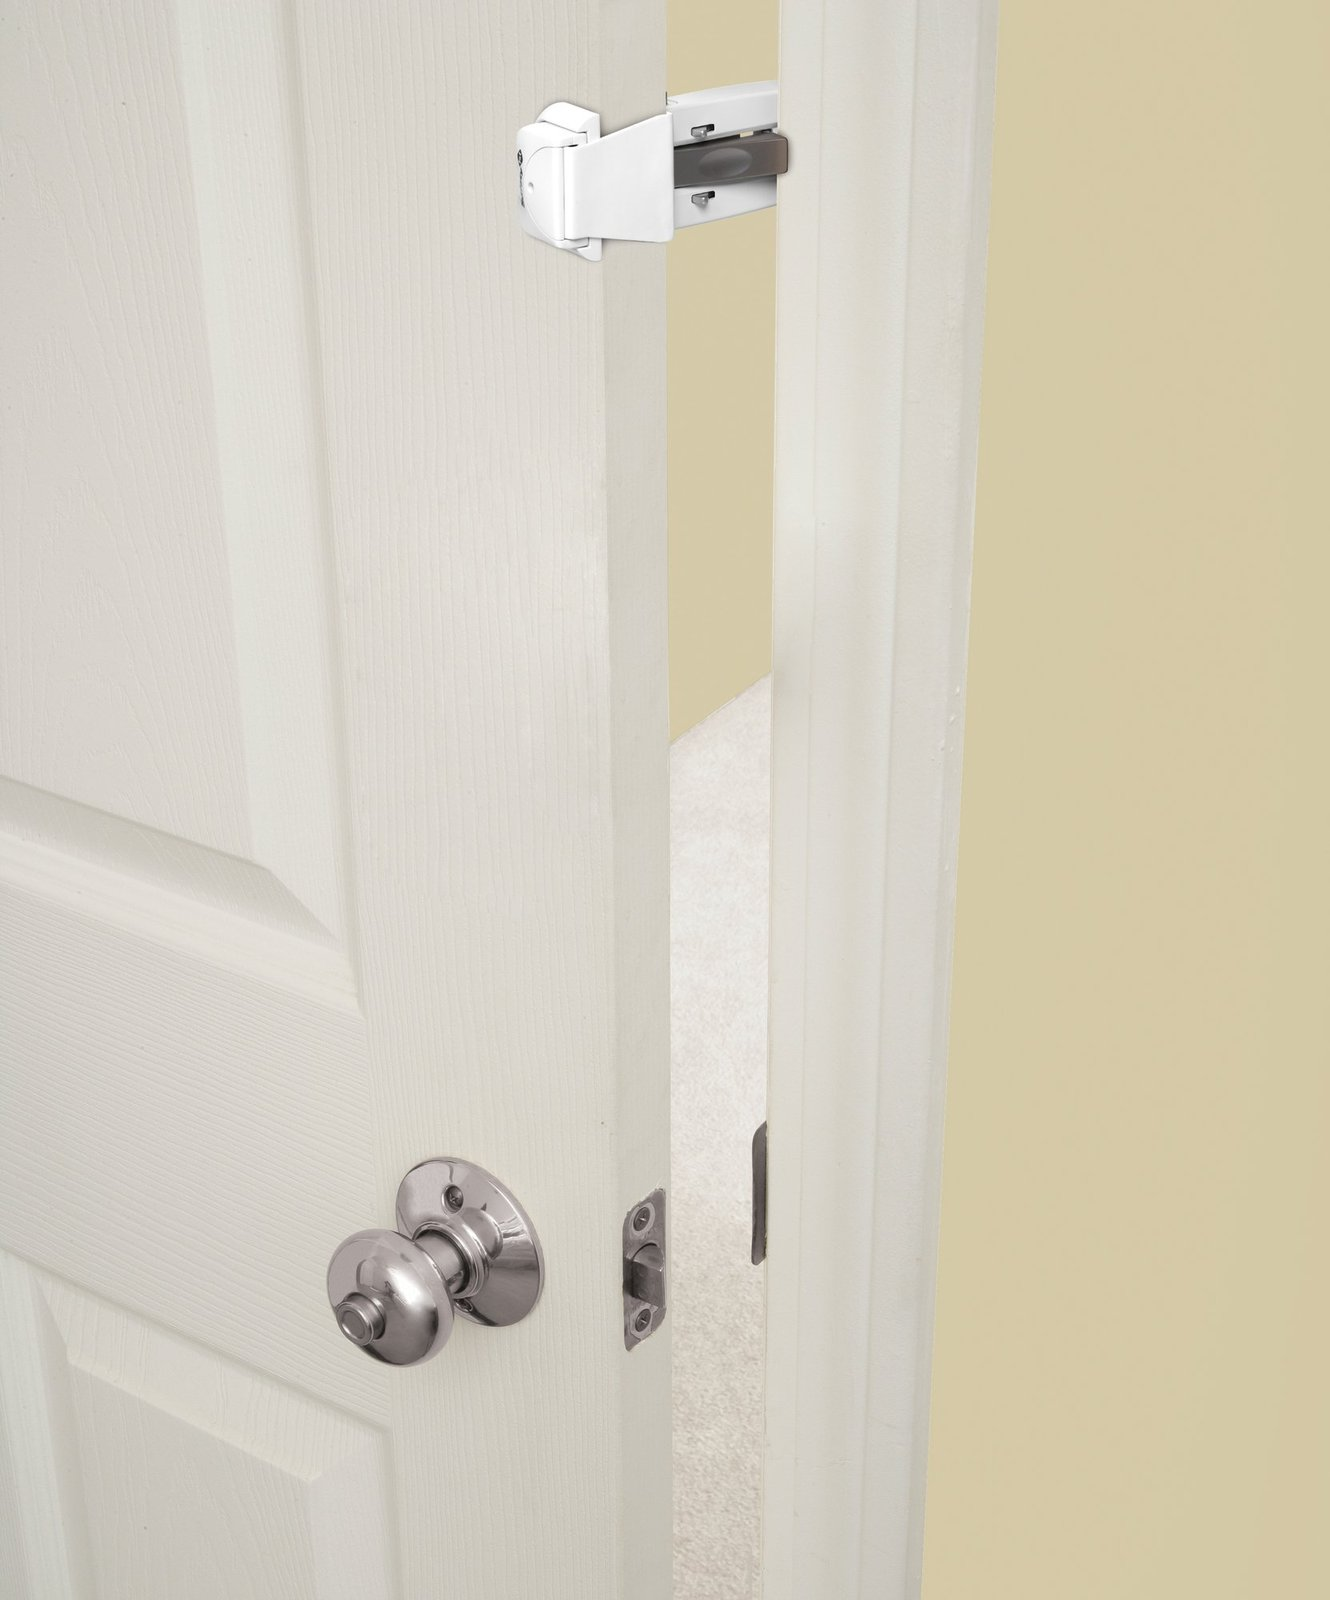 bedroom safe locks